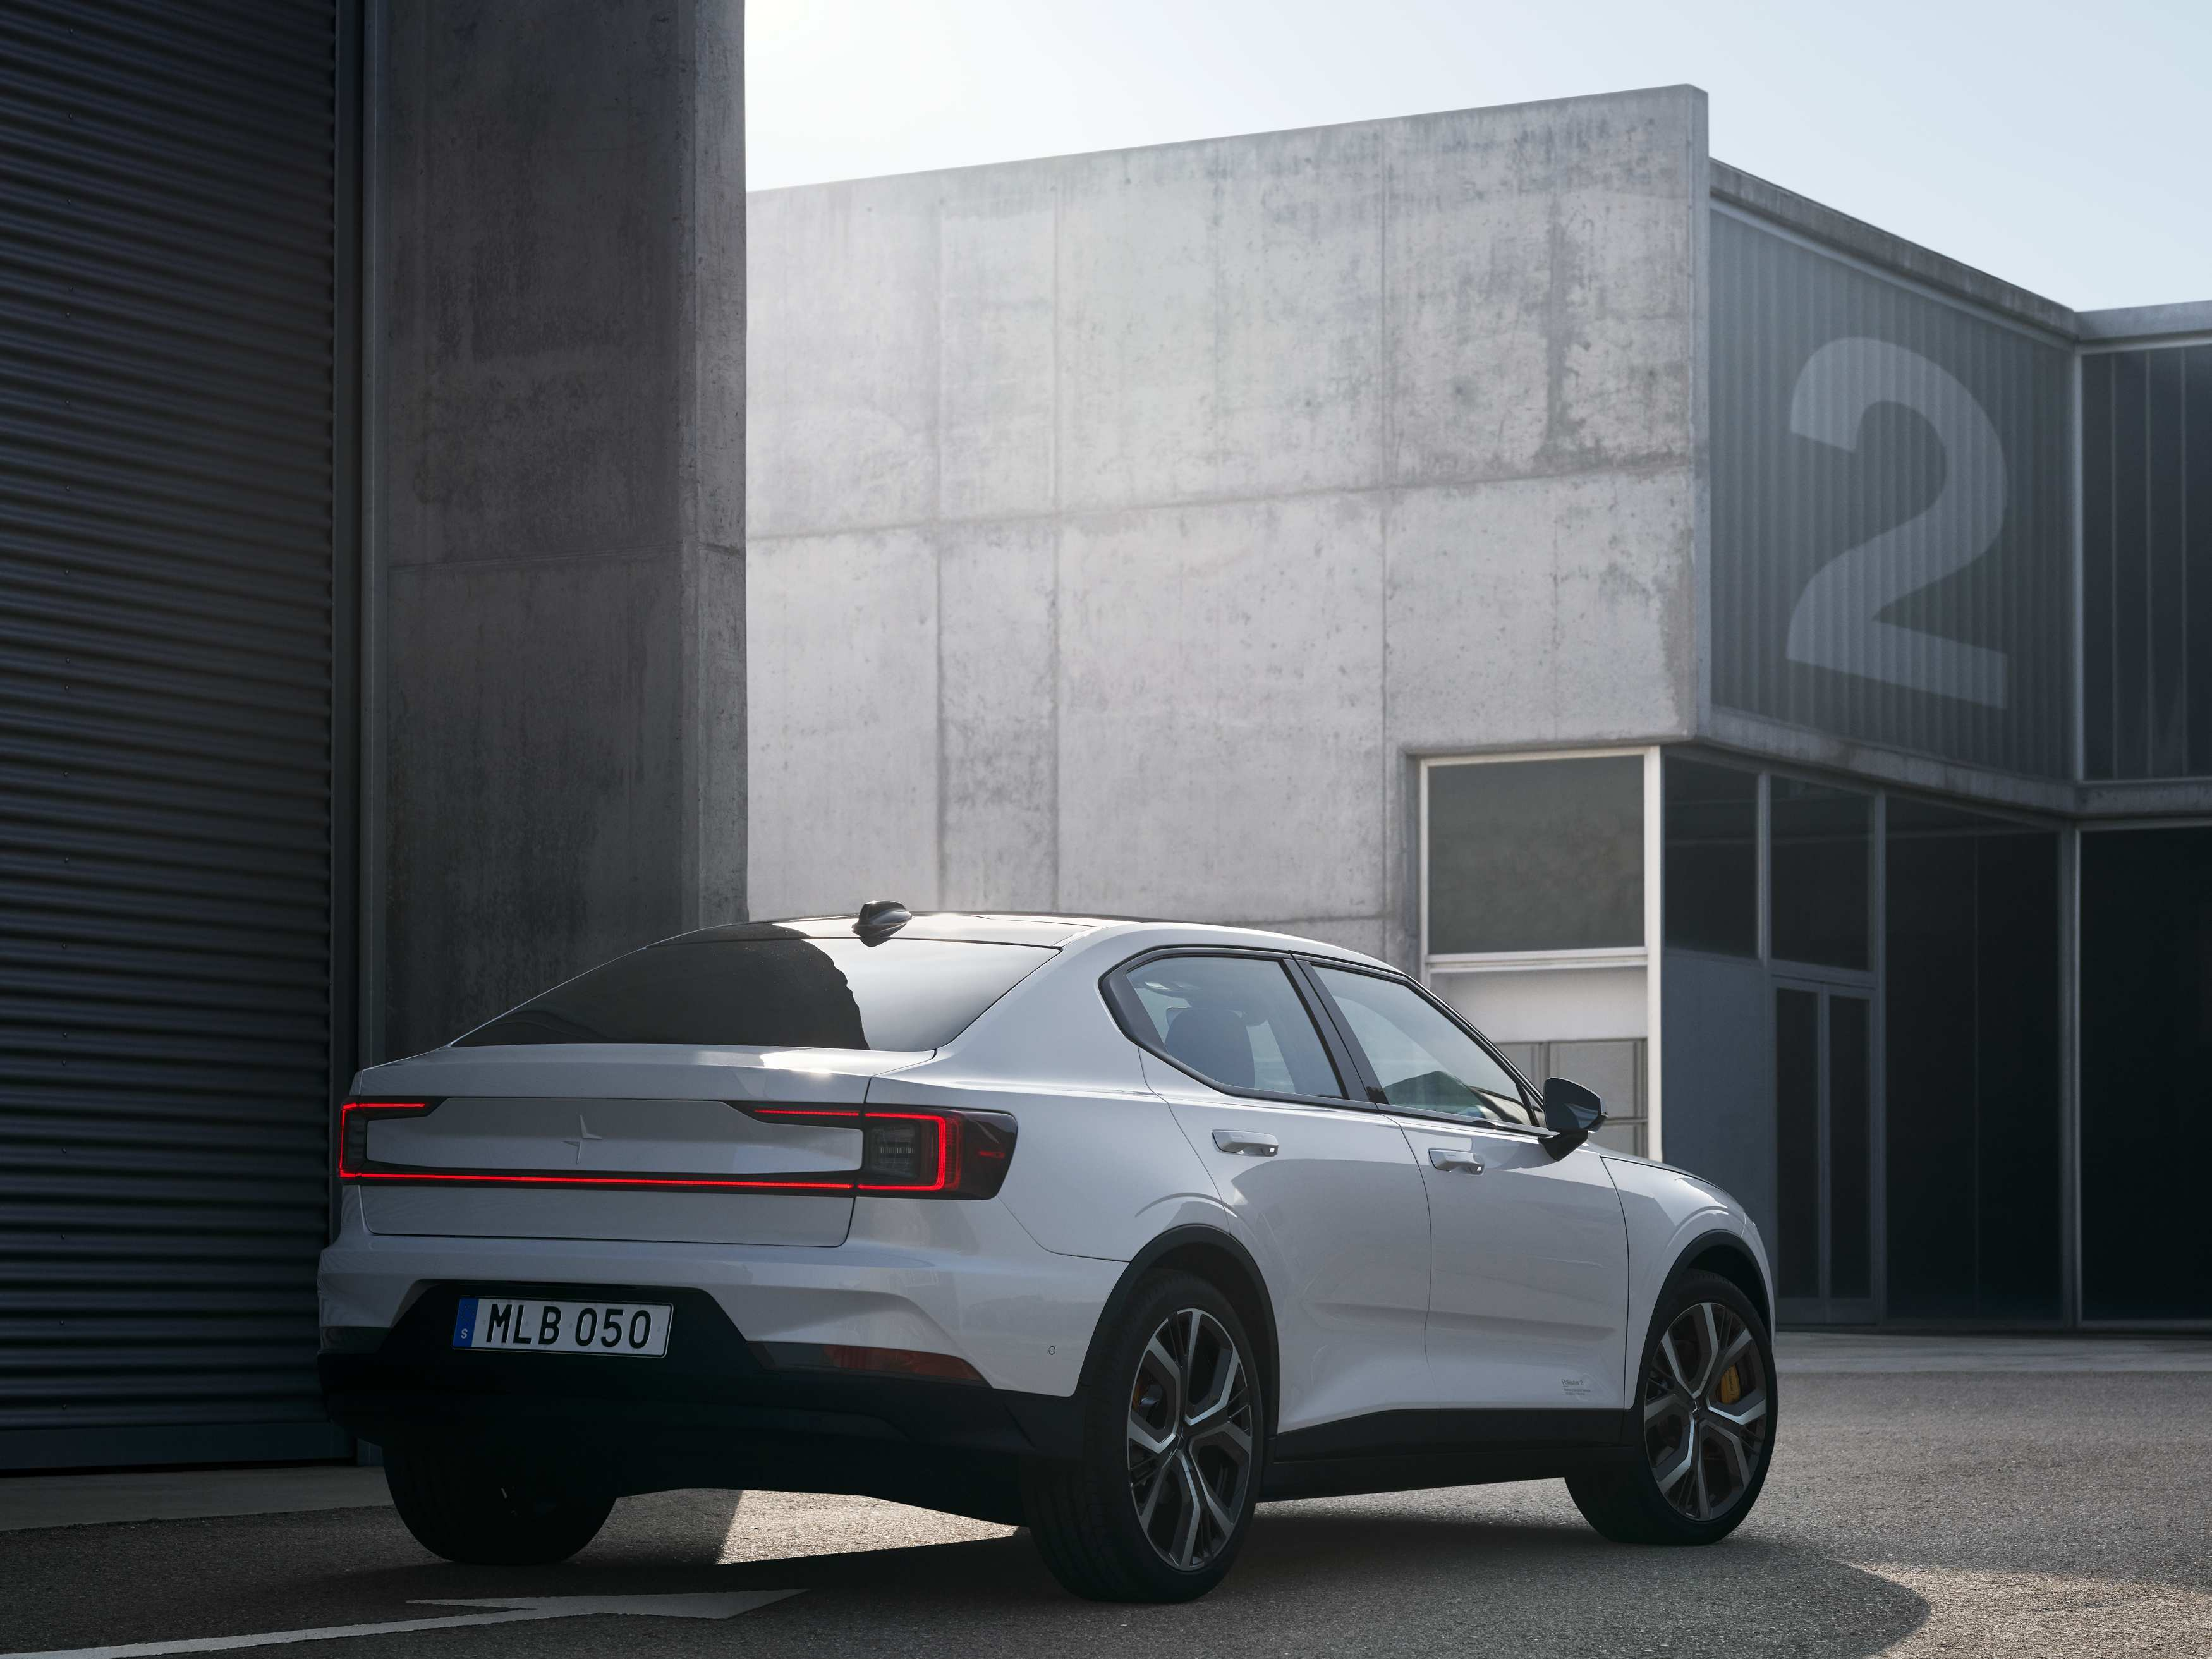 28 Concept of Volvo Overseas Delivery Pricing 2020 Spy Shoot by Volvo Overseas Delivery Pricing 2020